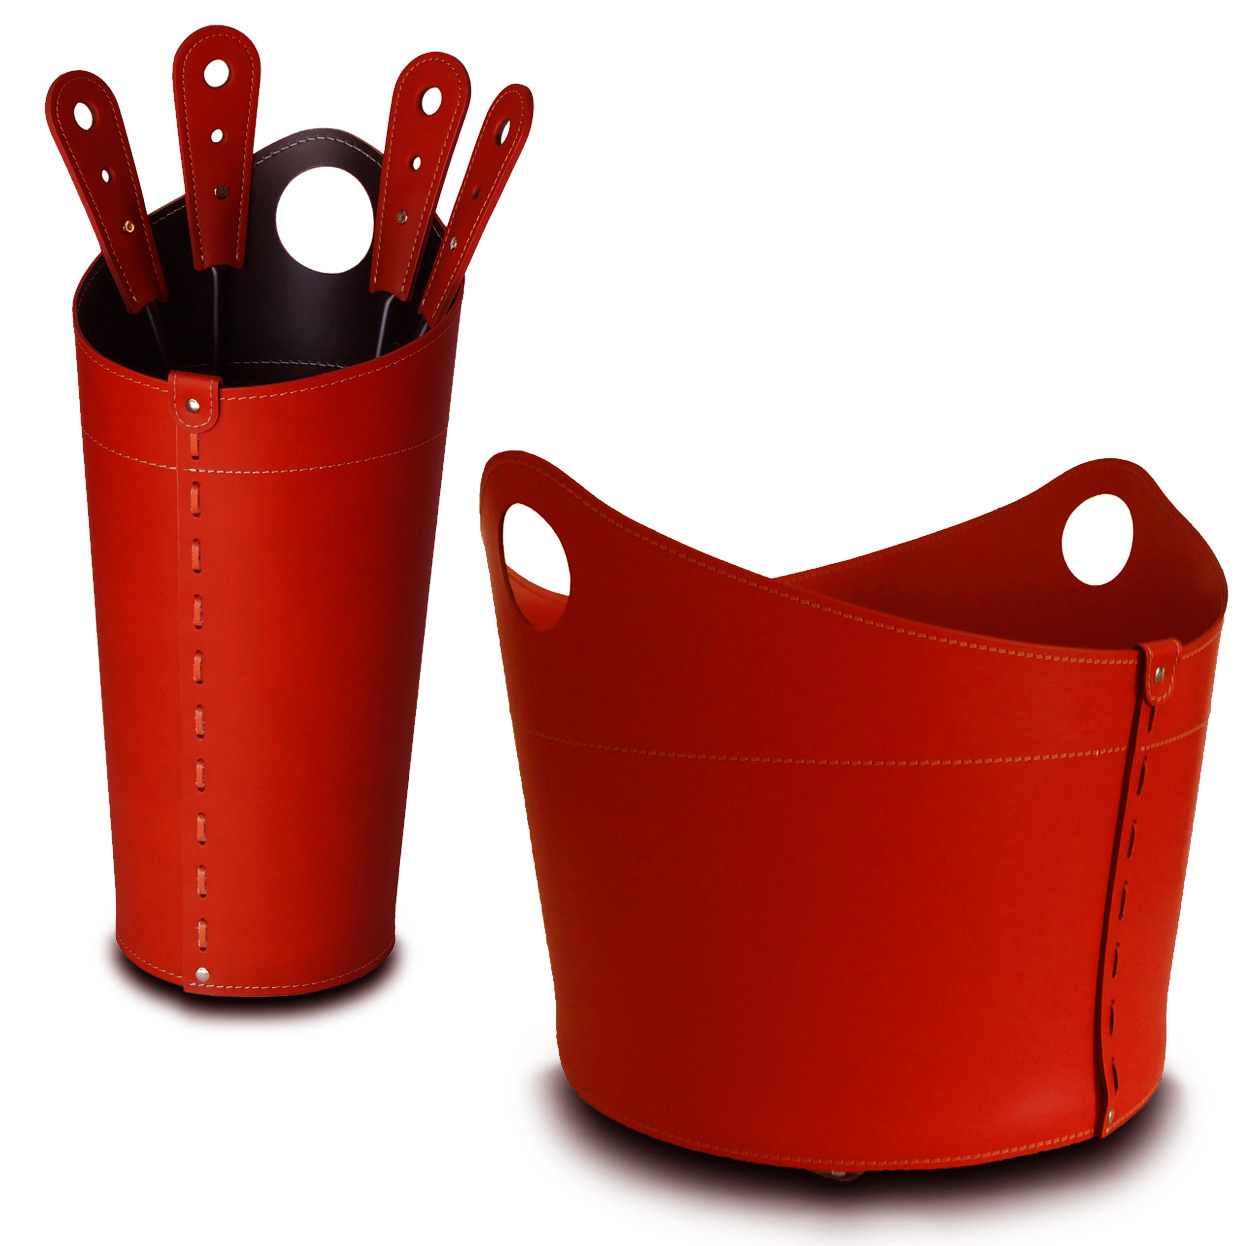 NICAD: Fireplace set in leather Red color, composed of Firewood Holder, FirepIron Bag and Fireplace Tools, Gift idea, Firewood Basket, Made in Italy, Firestyle® design.